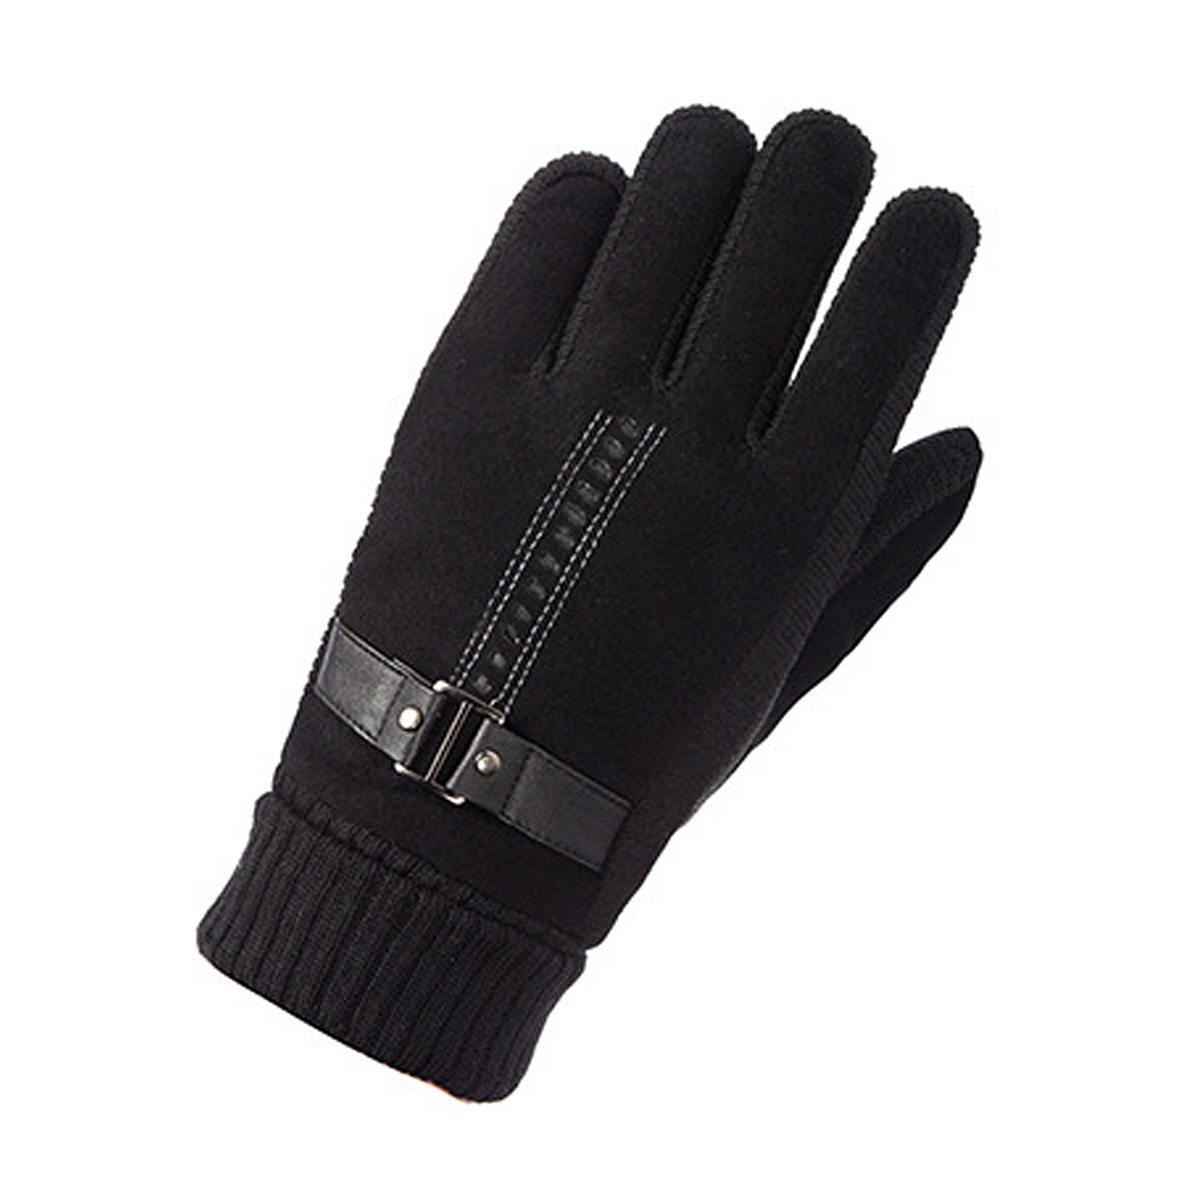 Winter Plush Inner Touch Screen Motorcycle Leather Gloves Camping Skiing Bicycle Driving Protective